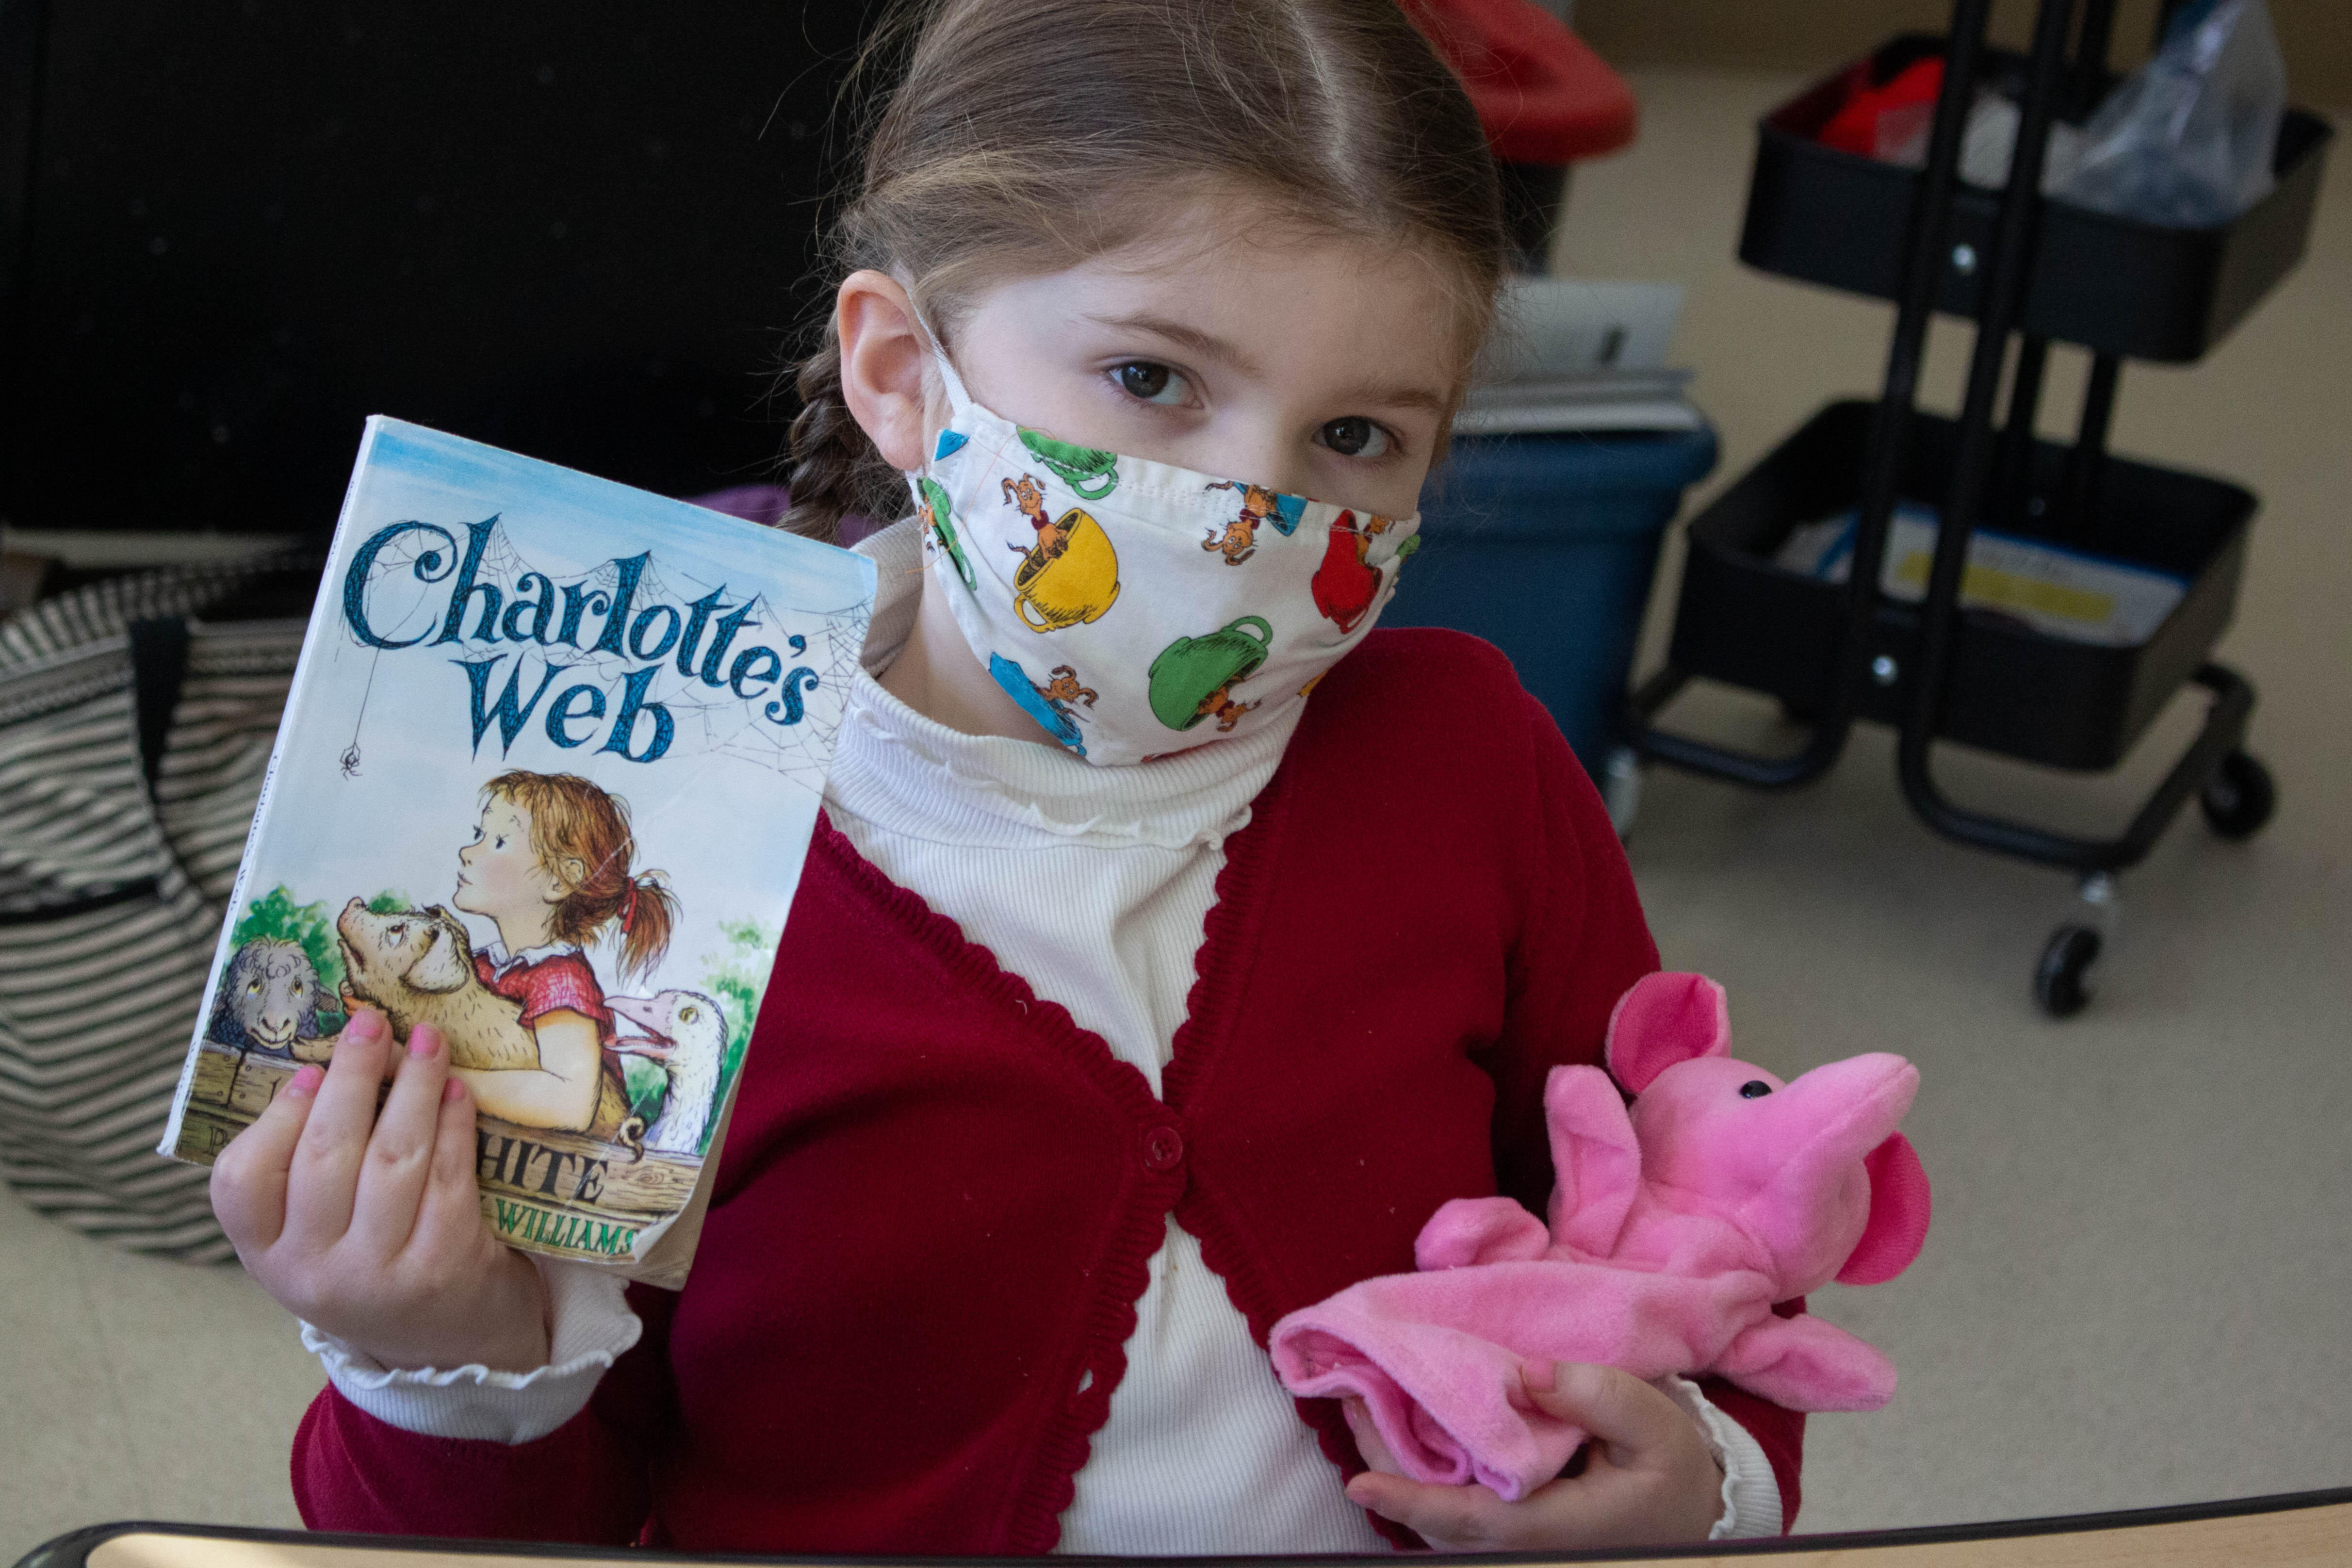 Student posing for a picture holding up a copy of Charlotte's Web and a toy pig